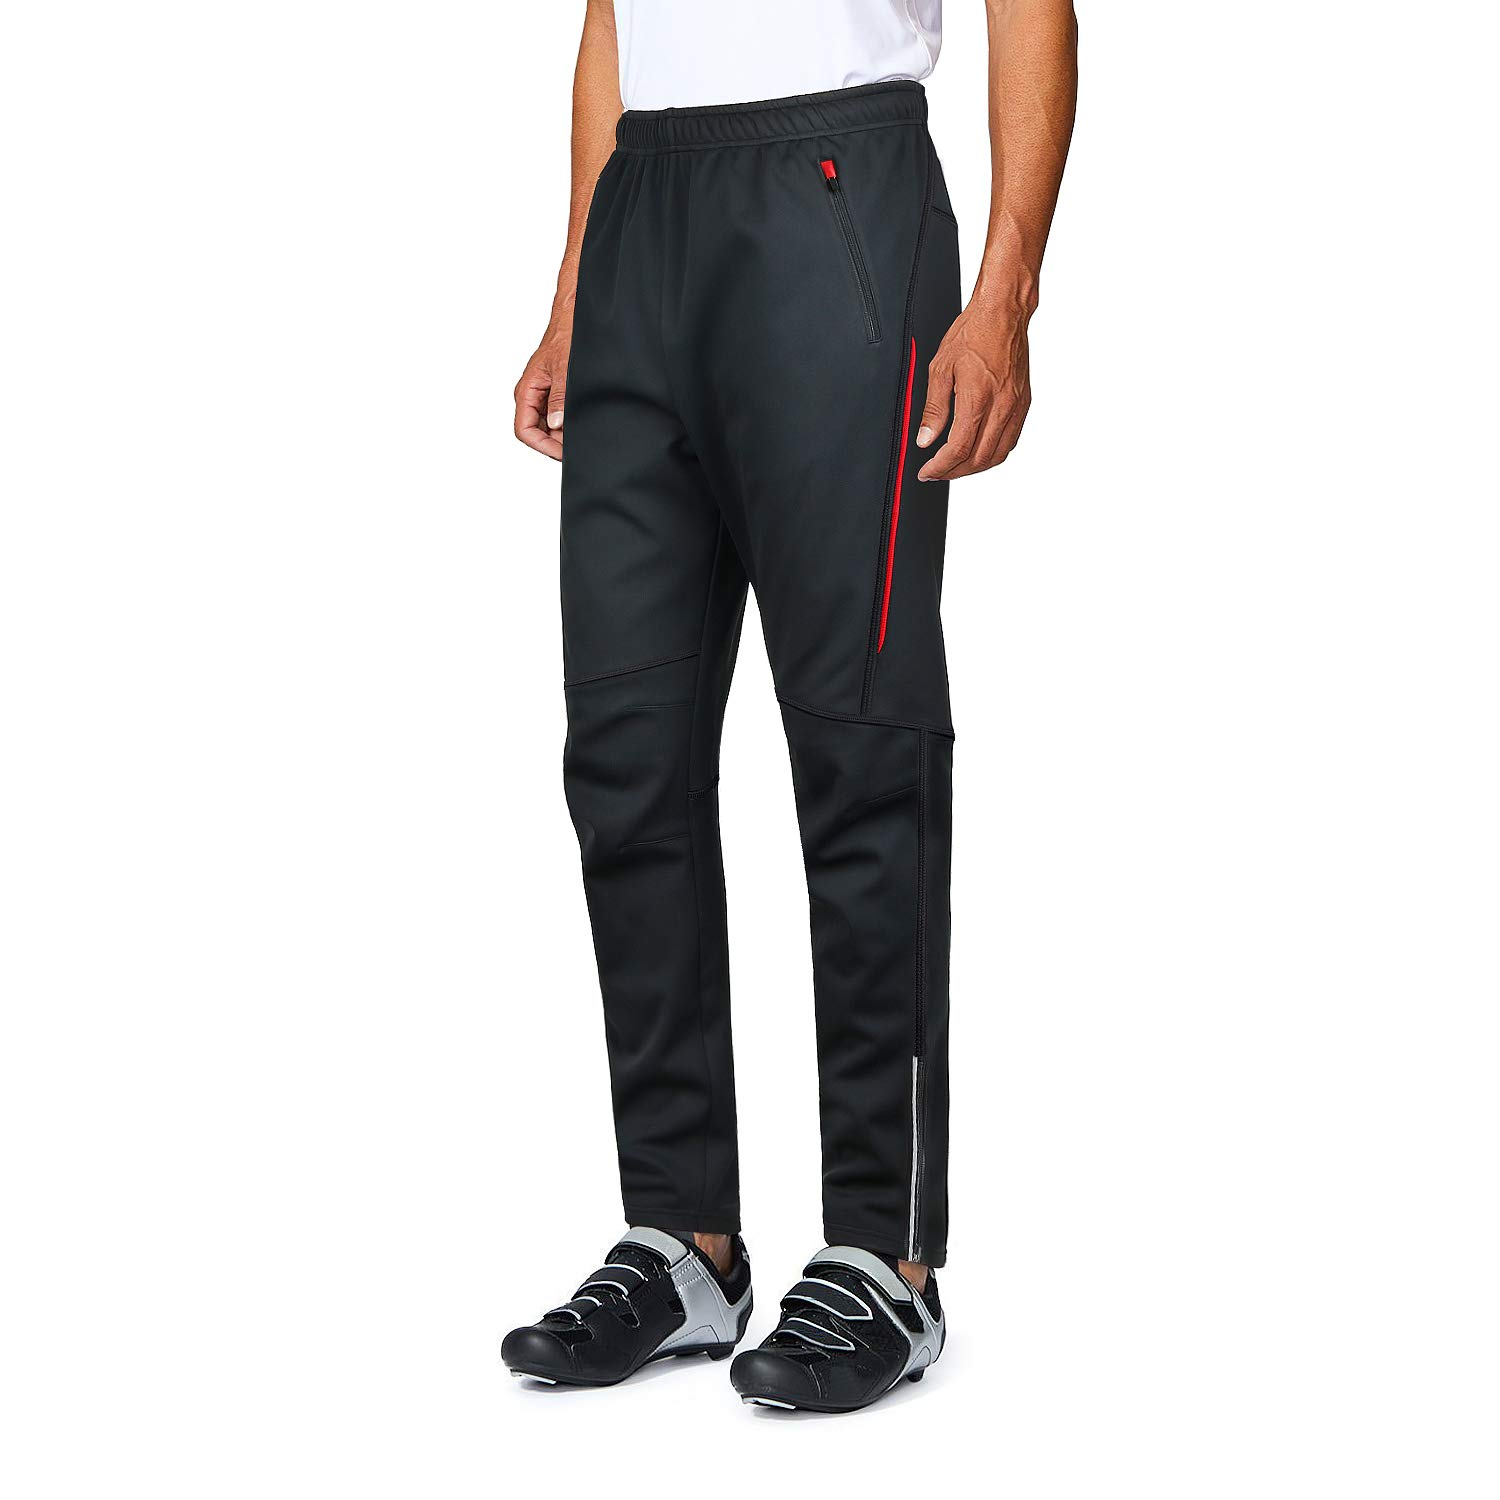 4ucycling Windproof Athletic Pants Outdoor Multi Sports by 4ucycling